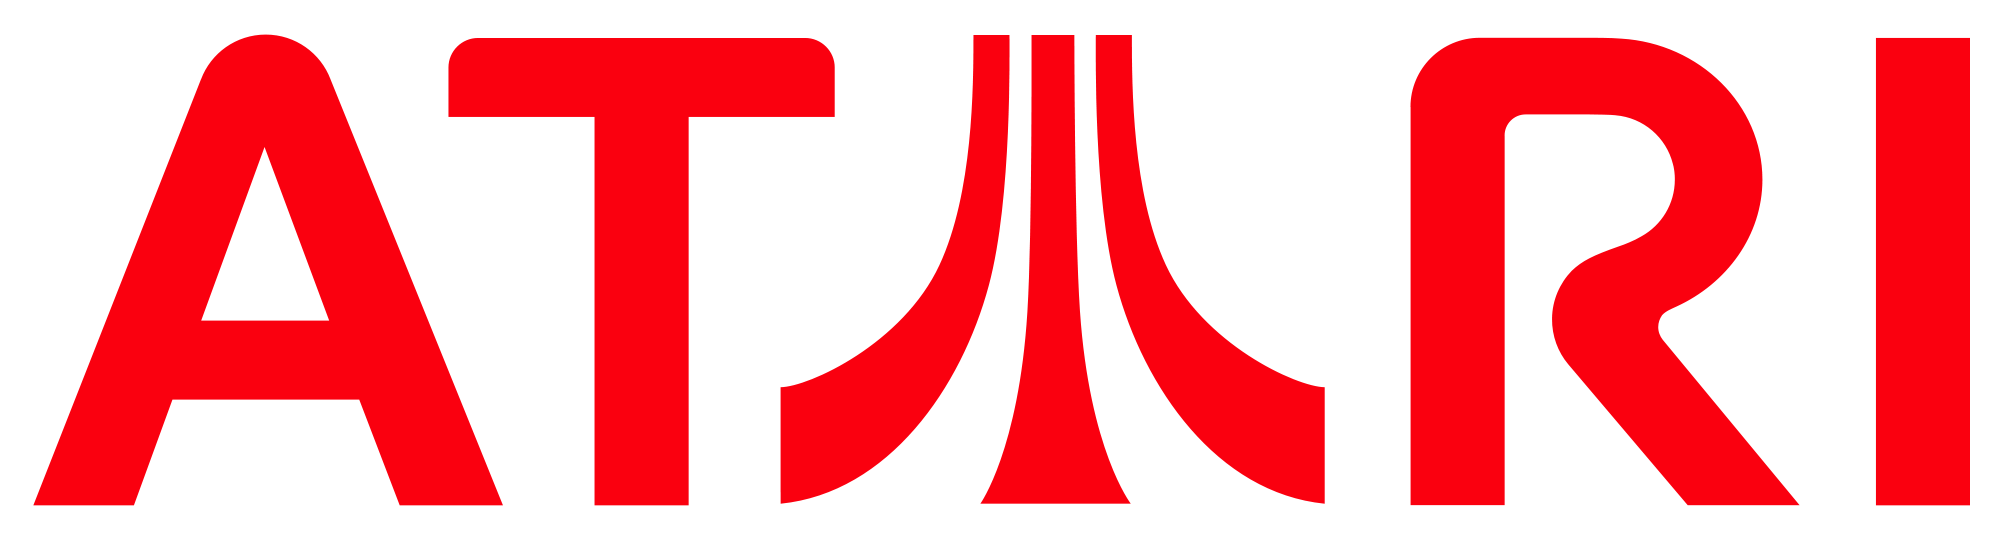 Image result for atari logo